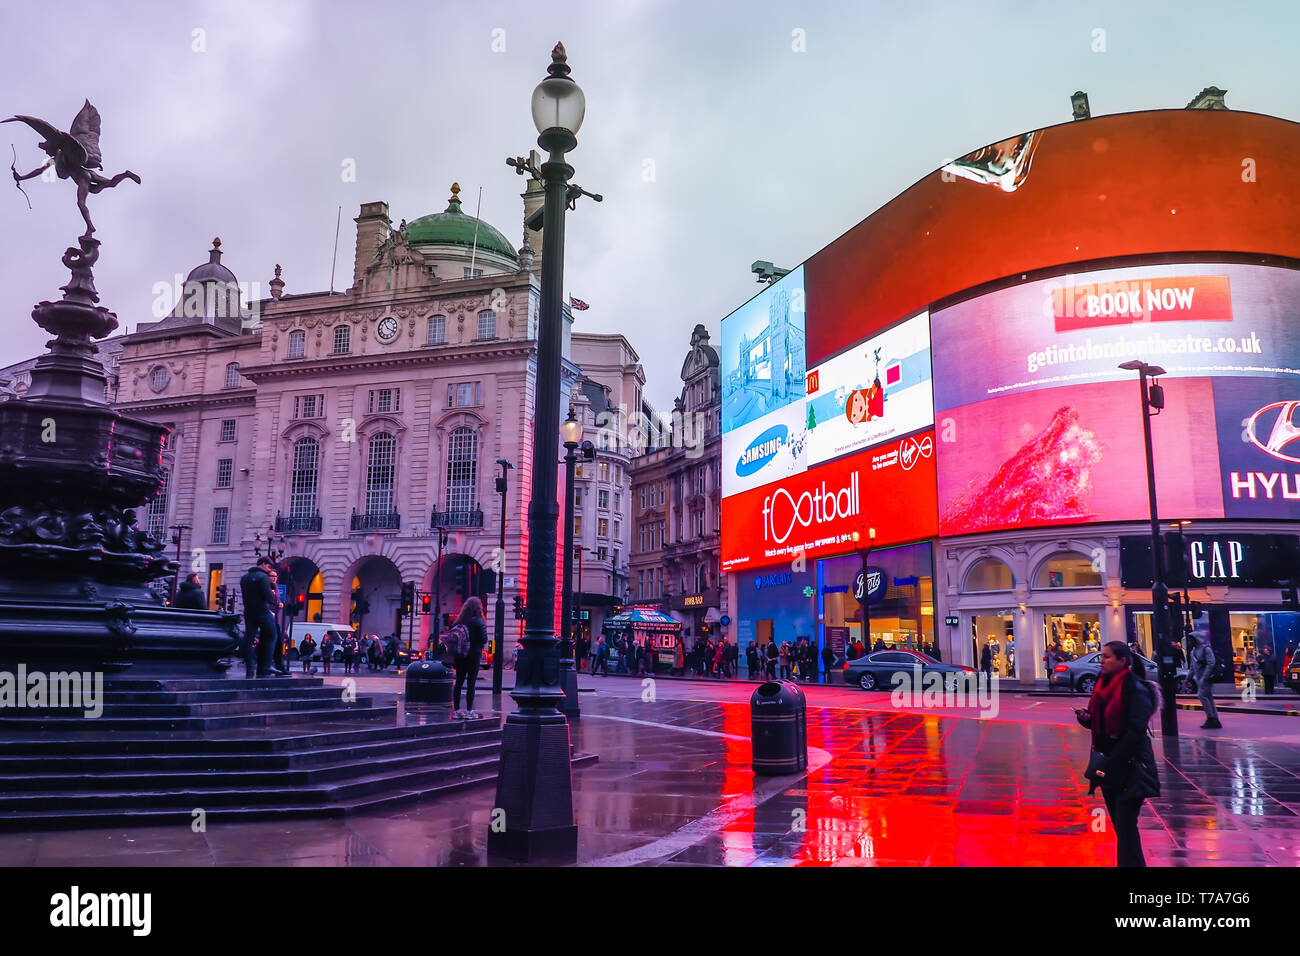 Piccadilly Circus with the Shaftesbury Memorial Fountain and advertising screens, a famous London landmark and busy destination for tourists. - Stock Image